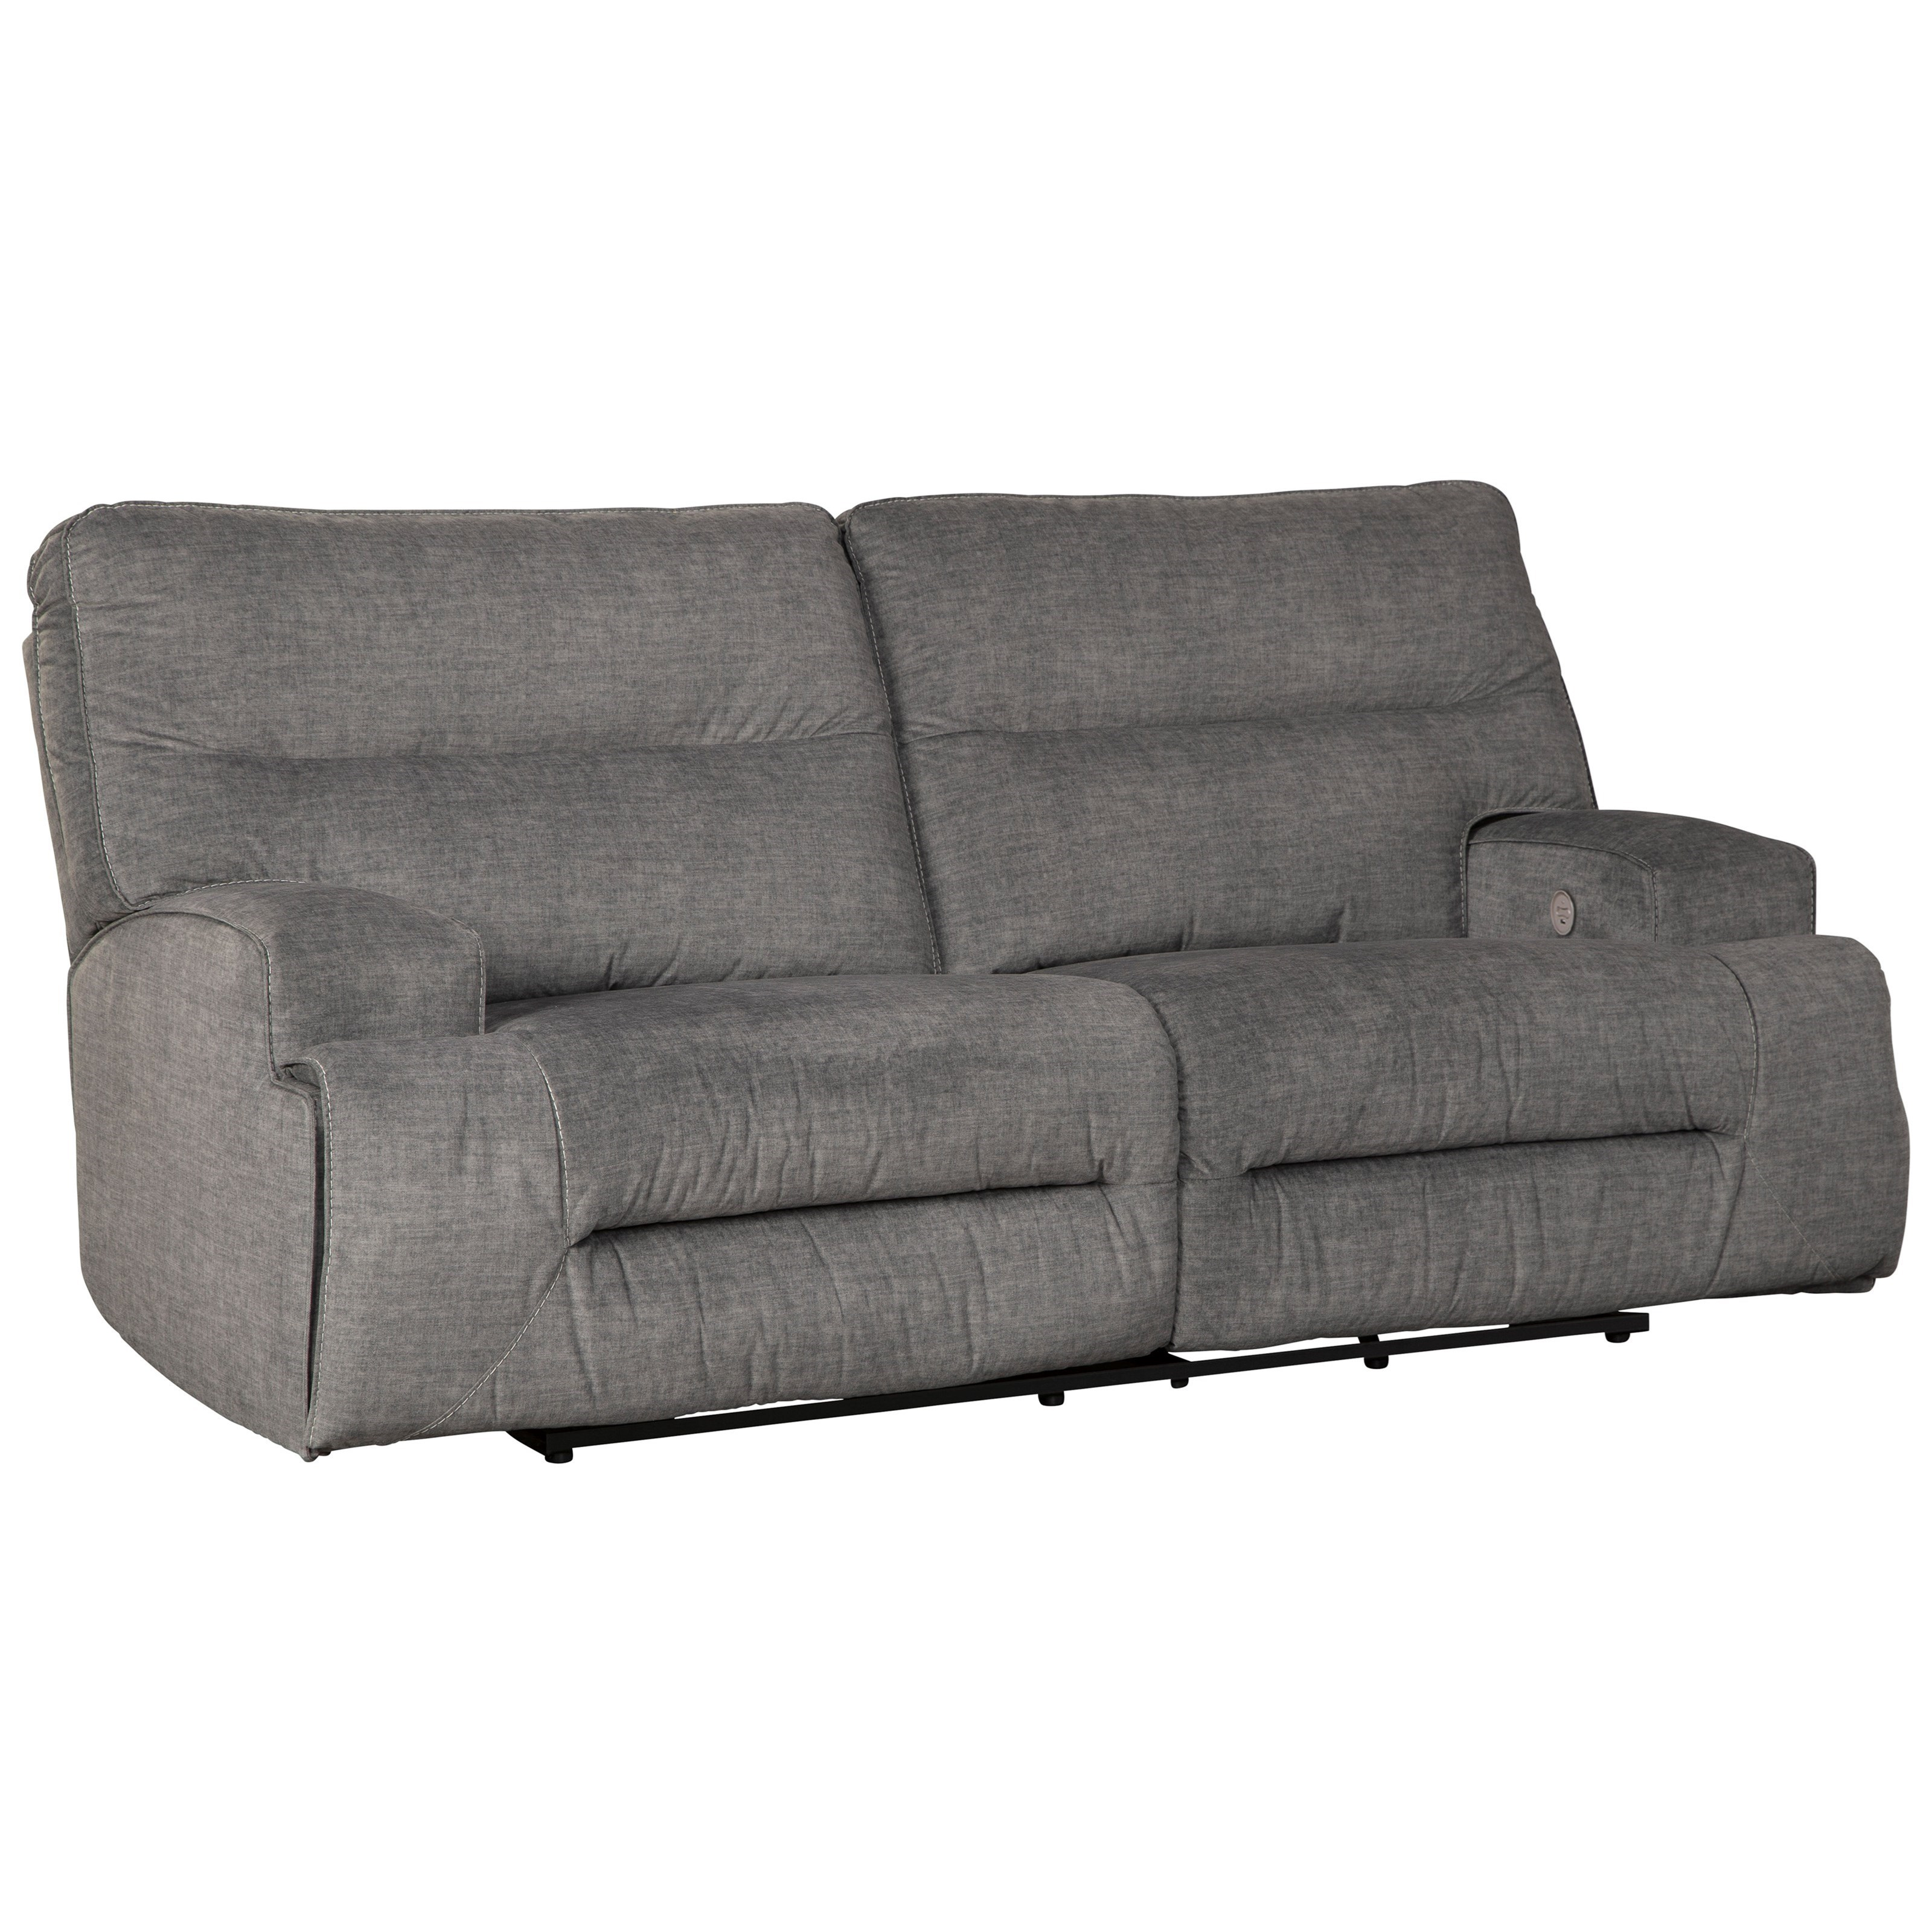 Coombs 2-Seat Reclining Power Sofa by Benchcraft at Miller Waldrop Furniture and Decor